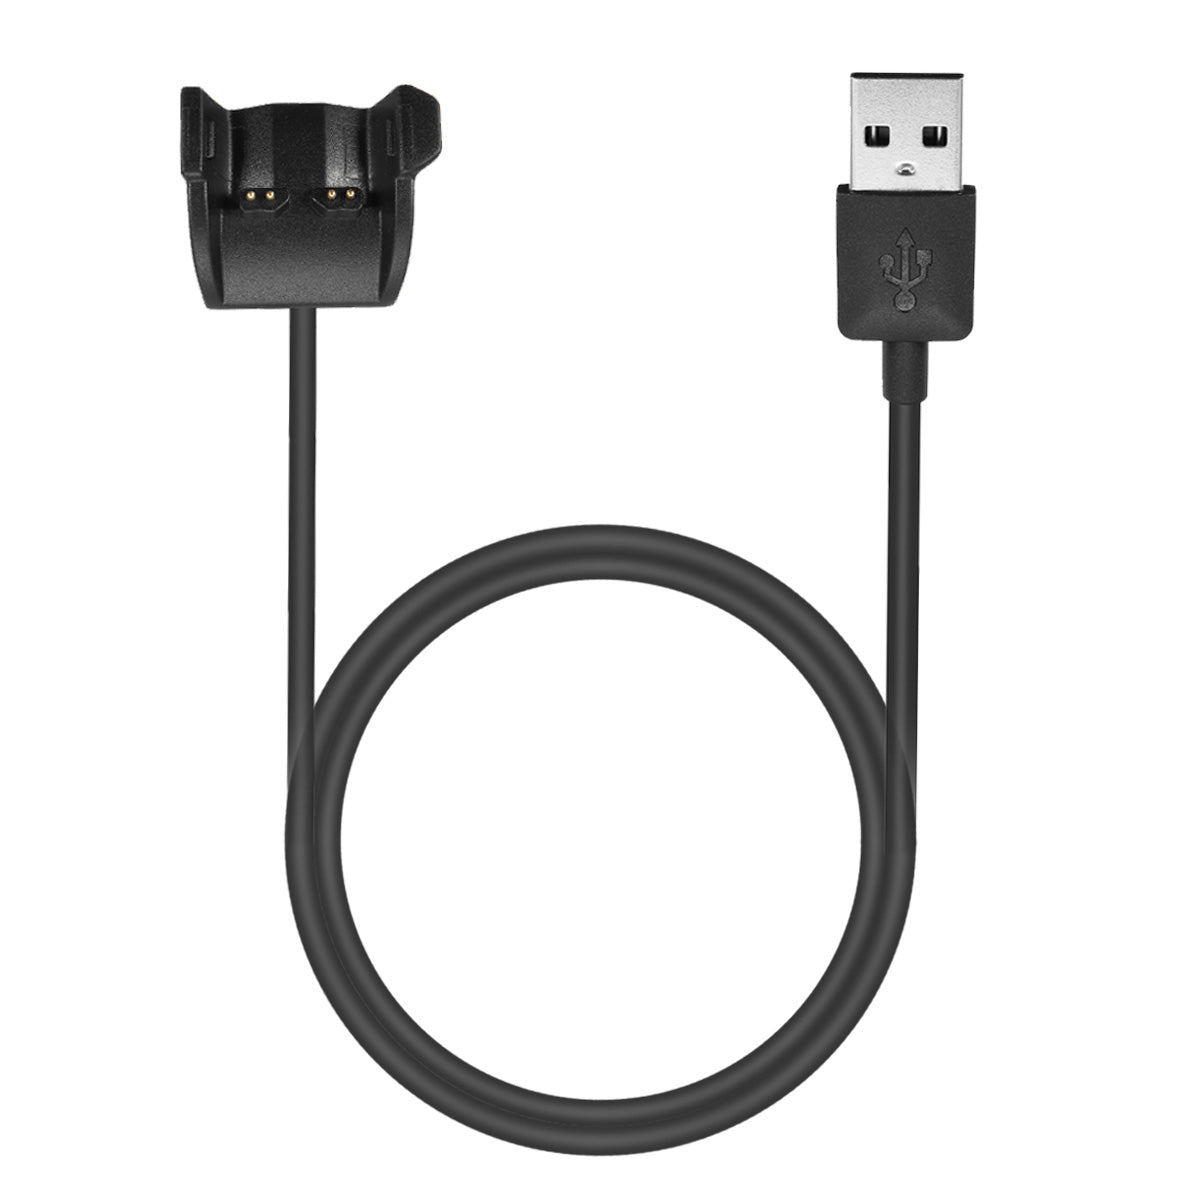 Garmin Vivosmart USB Charging Clip Charger Cradle Cable For Garmin Vivosmart HR/HR+